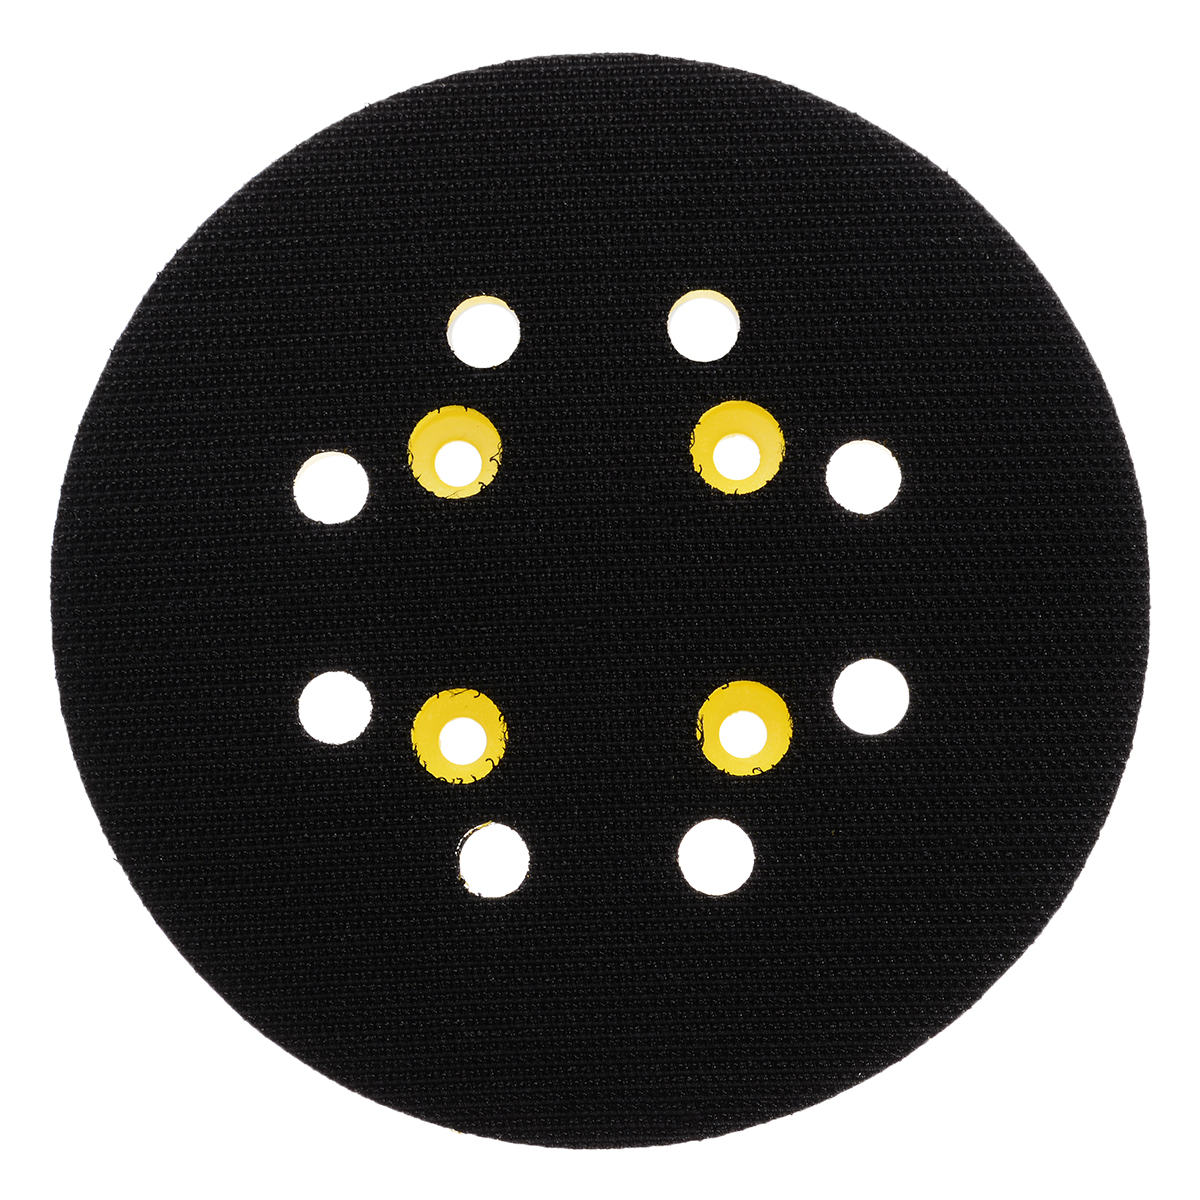 Image 4 - 5 Inch 8 Hole 125mm Back up Sanding Pad 4 Nails Hook and Loop Sander Backing Pad for Electric Grinder Power Tools Accessories-in Abrasive Tools from Tools